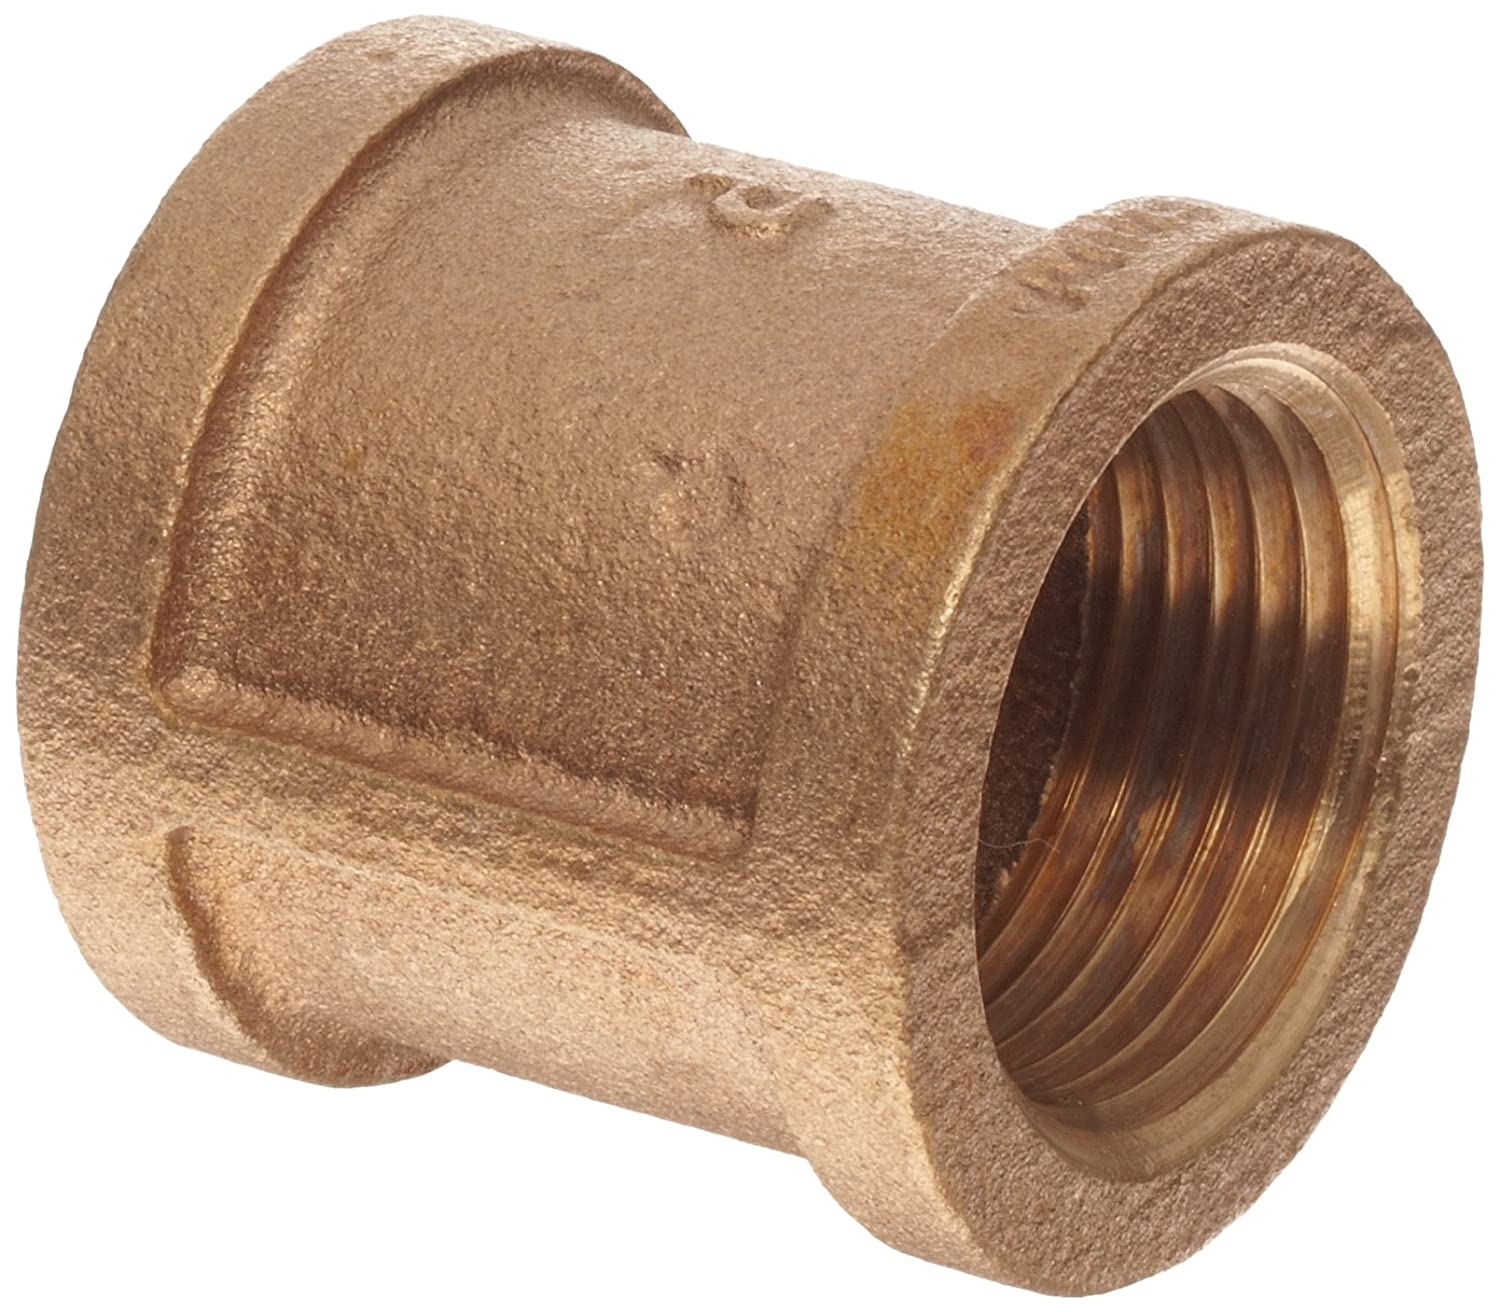 Product Anderson Metals - 38103-16 Brass 1